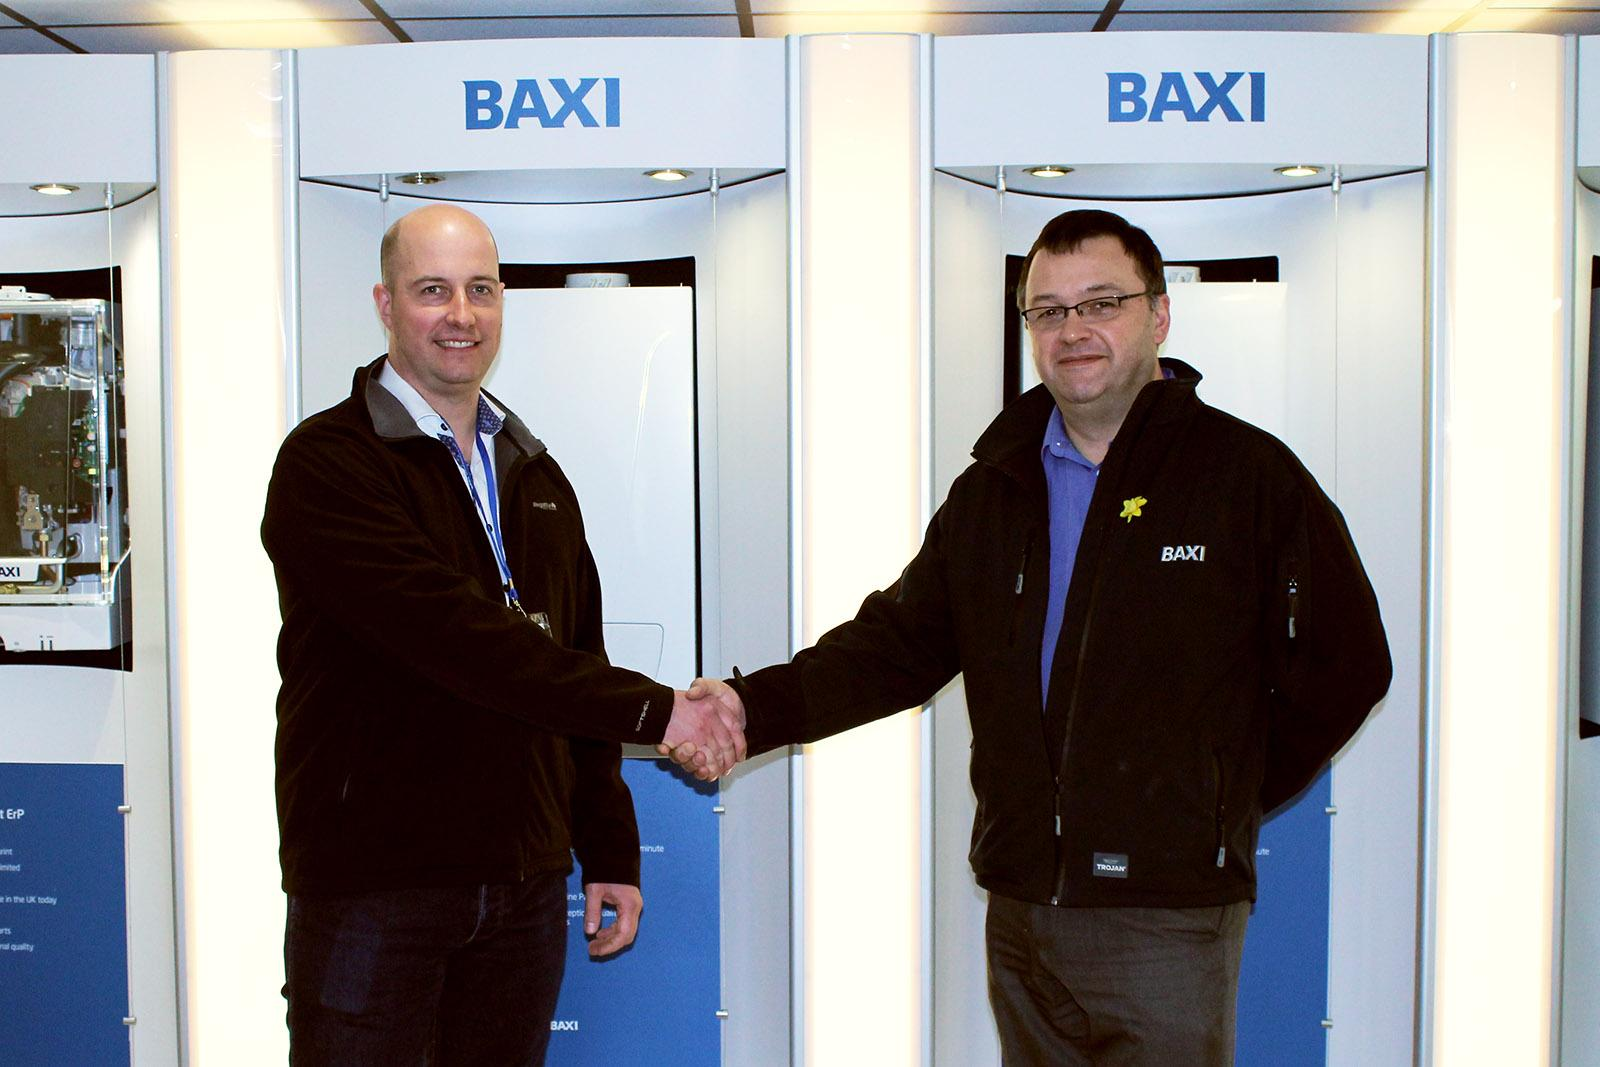 Christian Wright, Sales and Service Manager at AP&T together with Paul Clayton, Baxi Engineering Support.